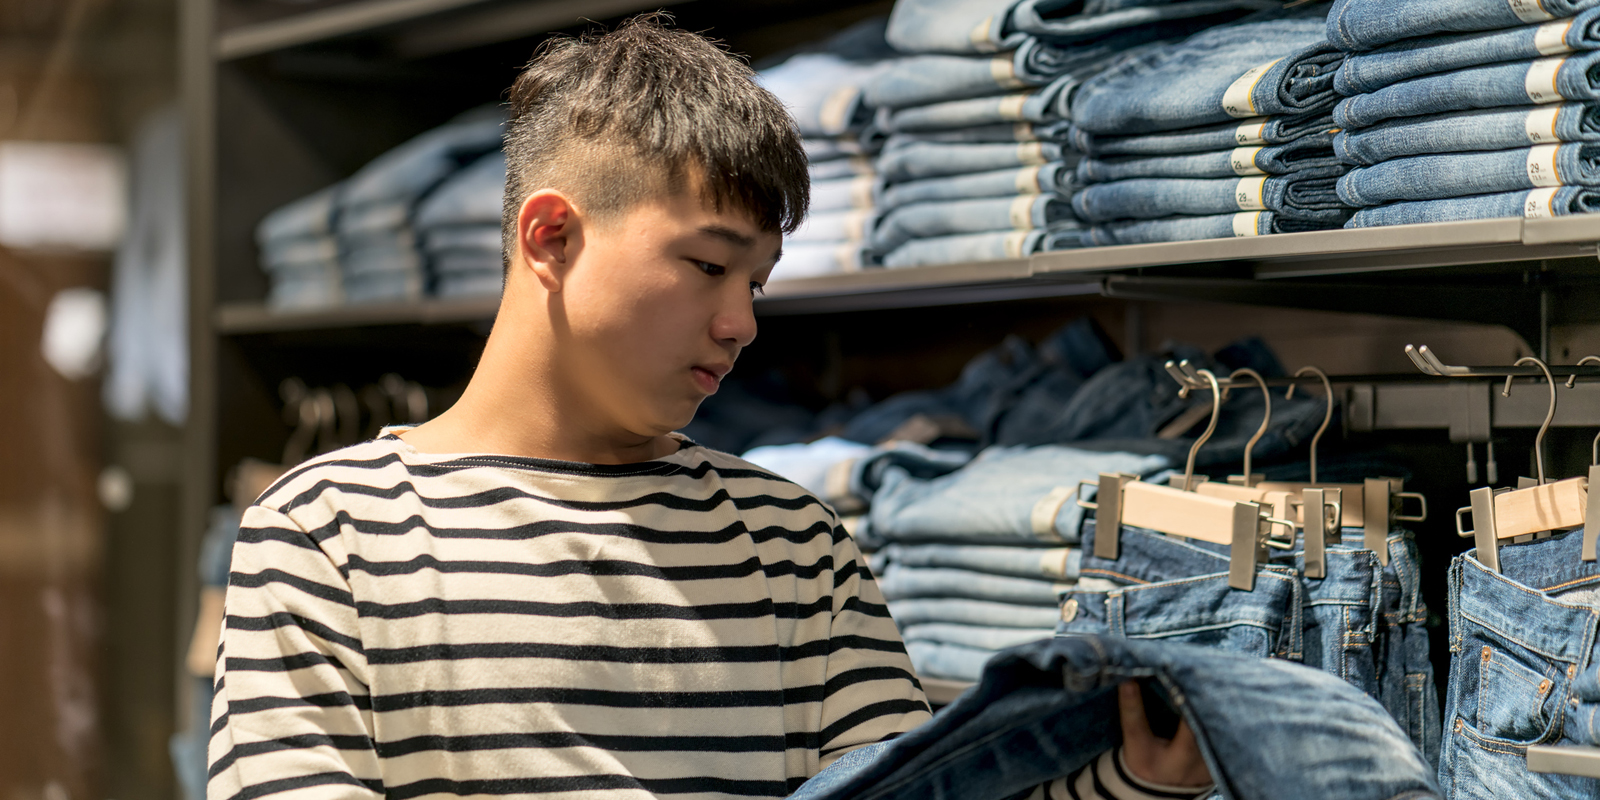 Teenage boy shopping for clothes in a discount store.